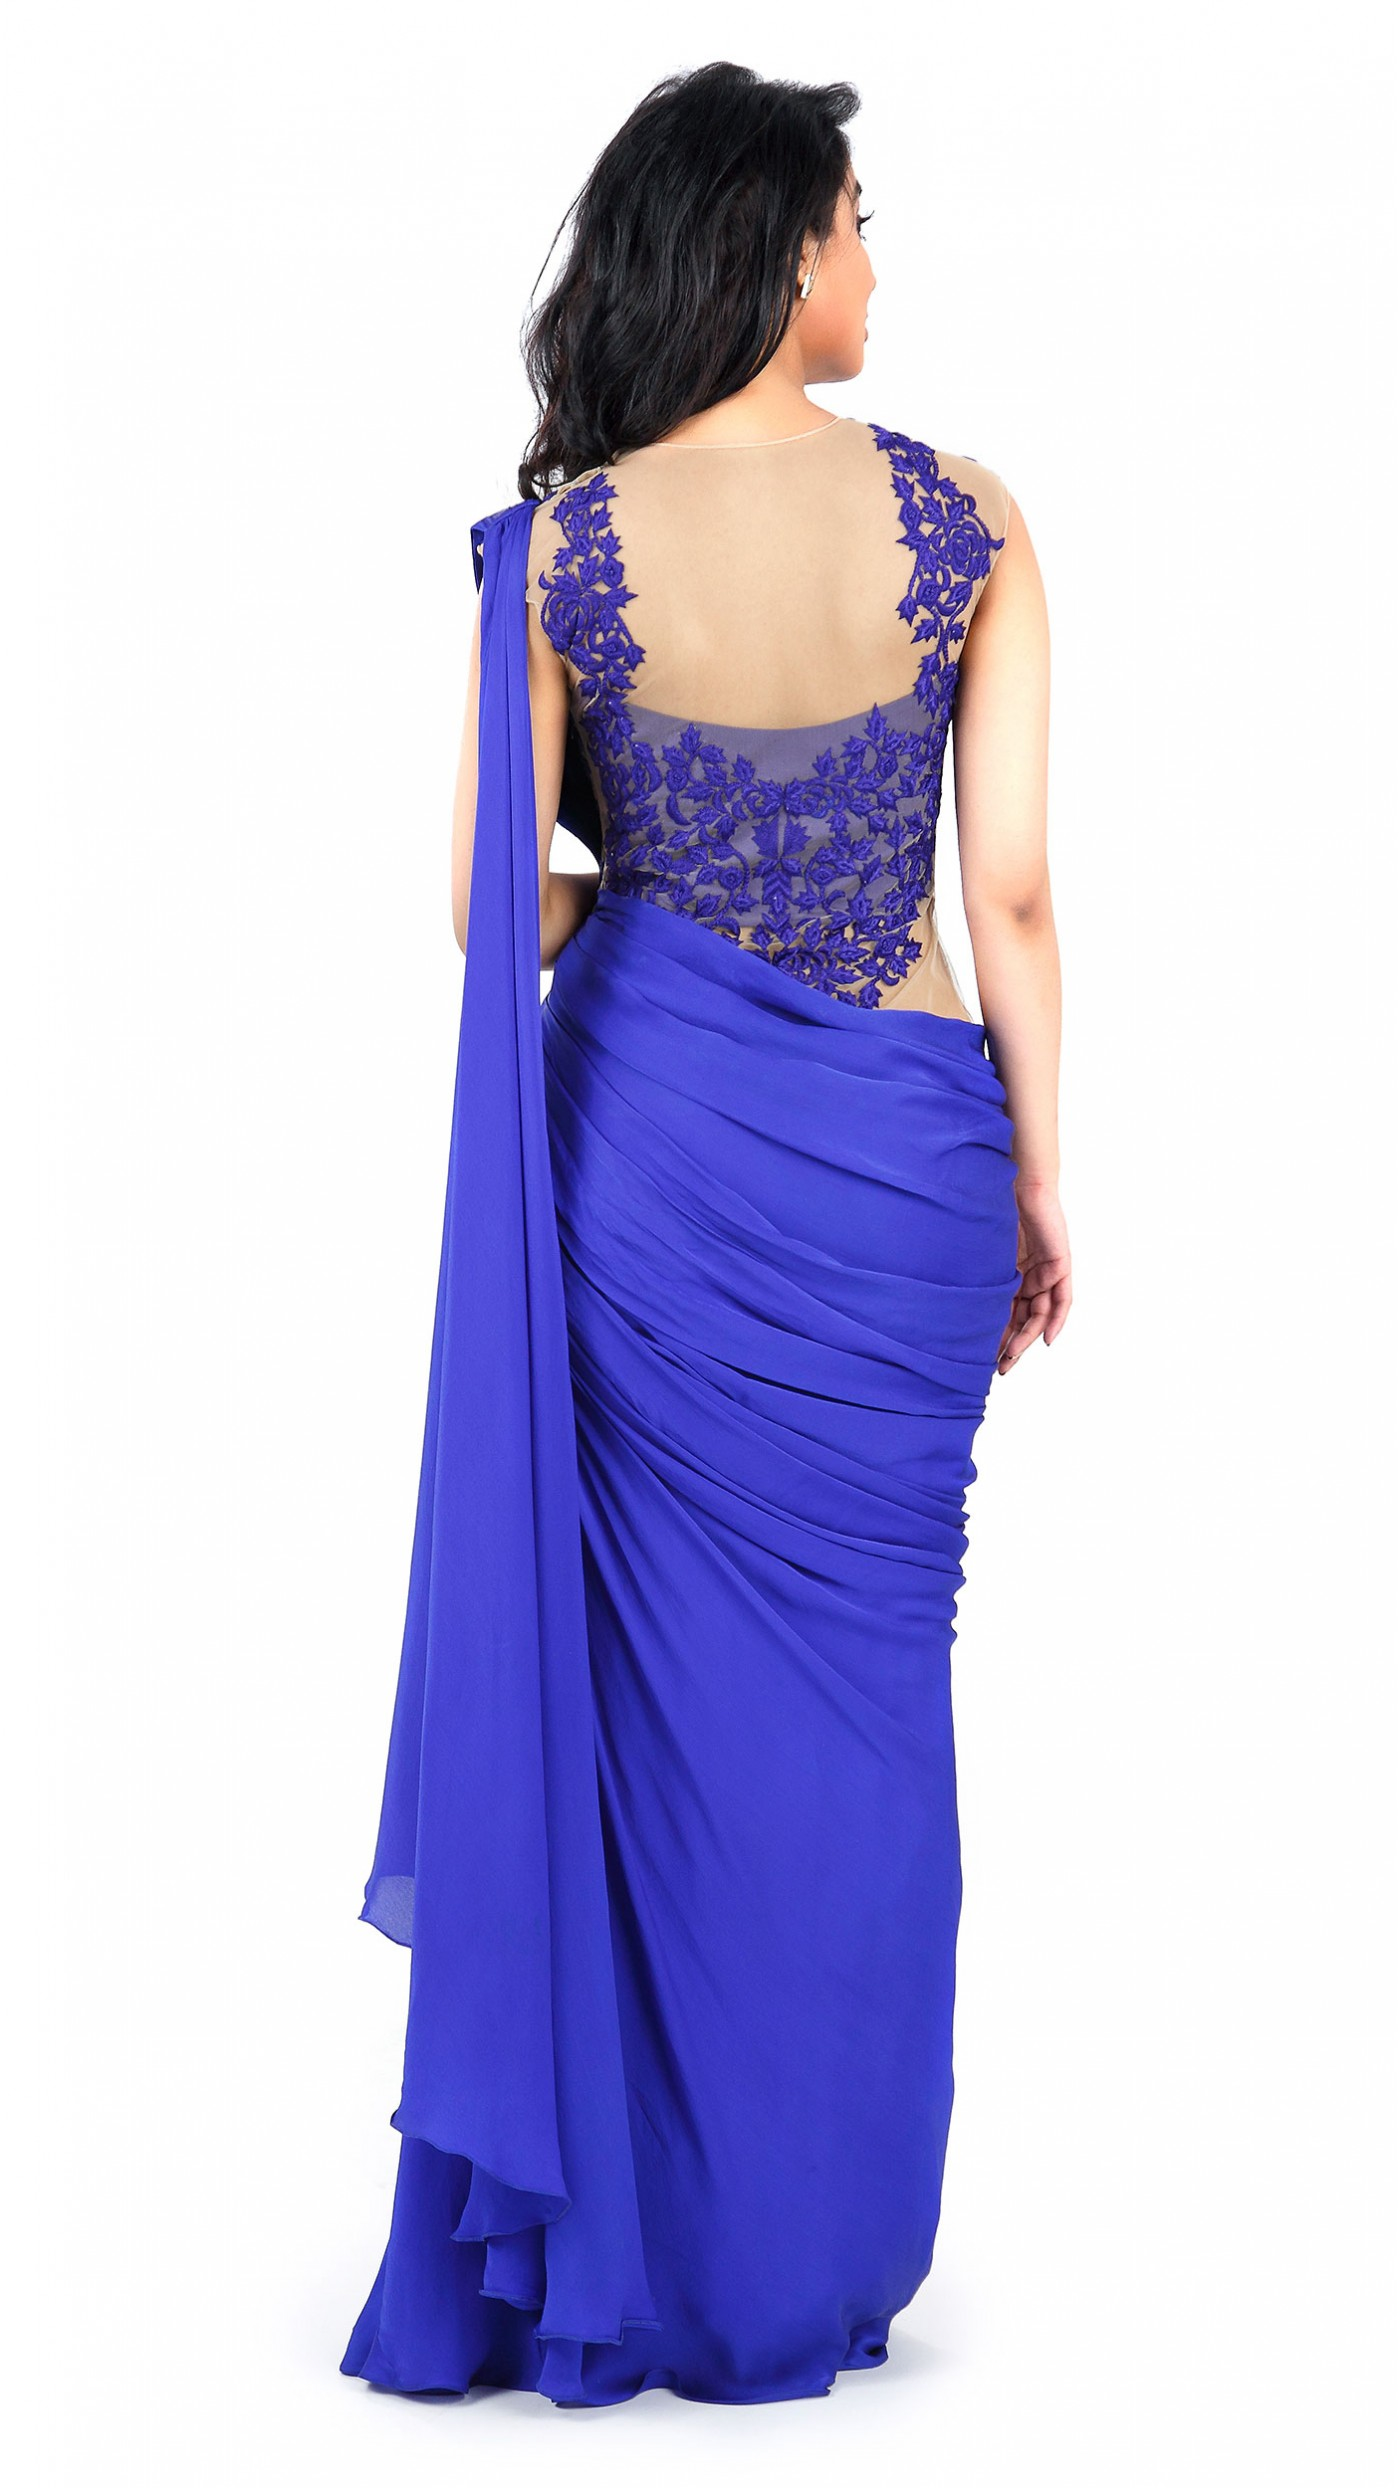 Sonaakshi Raaj S Royal Blue Saree Gown